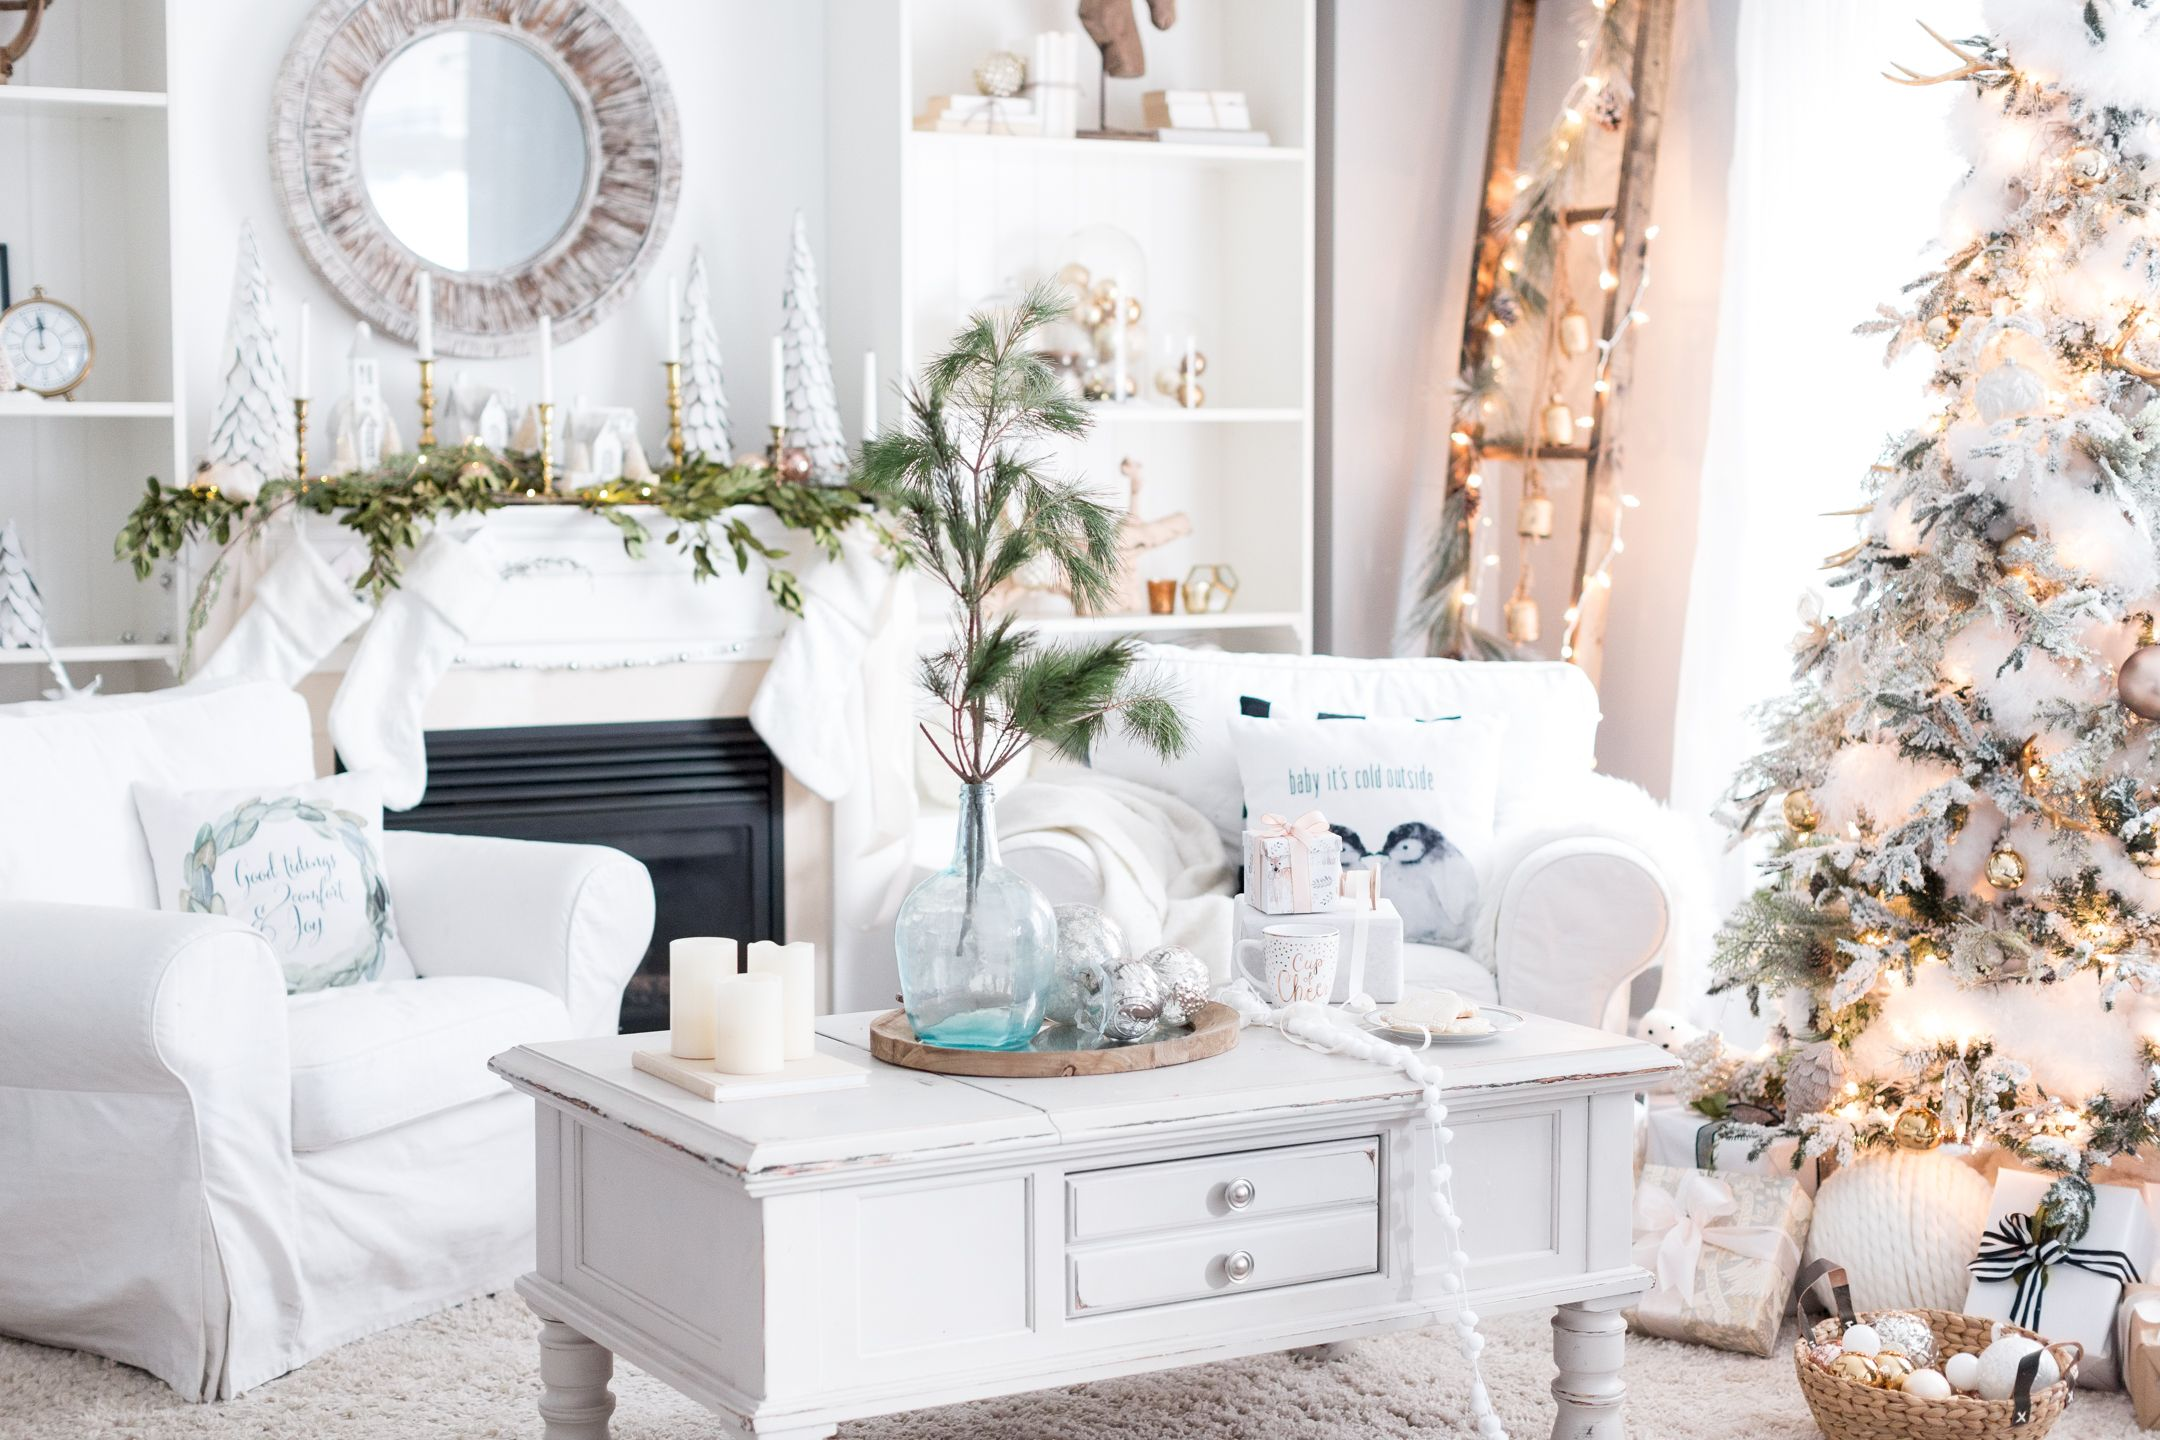 Bon Holiday Decor Small Space